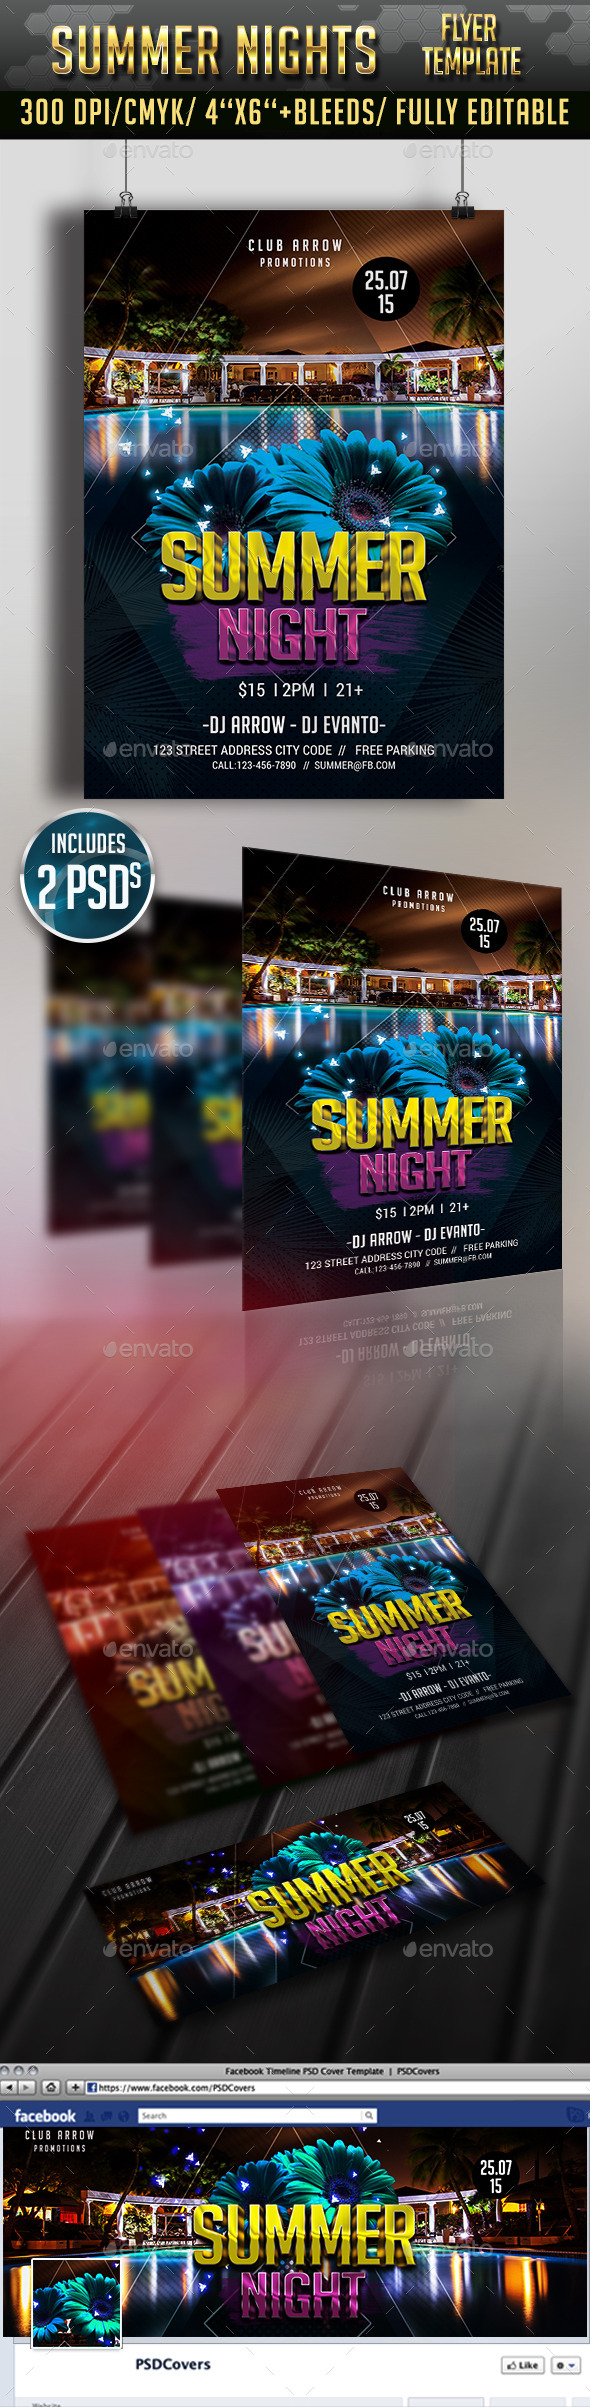 GraphicRiver Summer Night Flyer and Facebook Cover 11885888